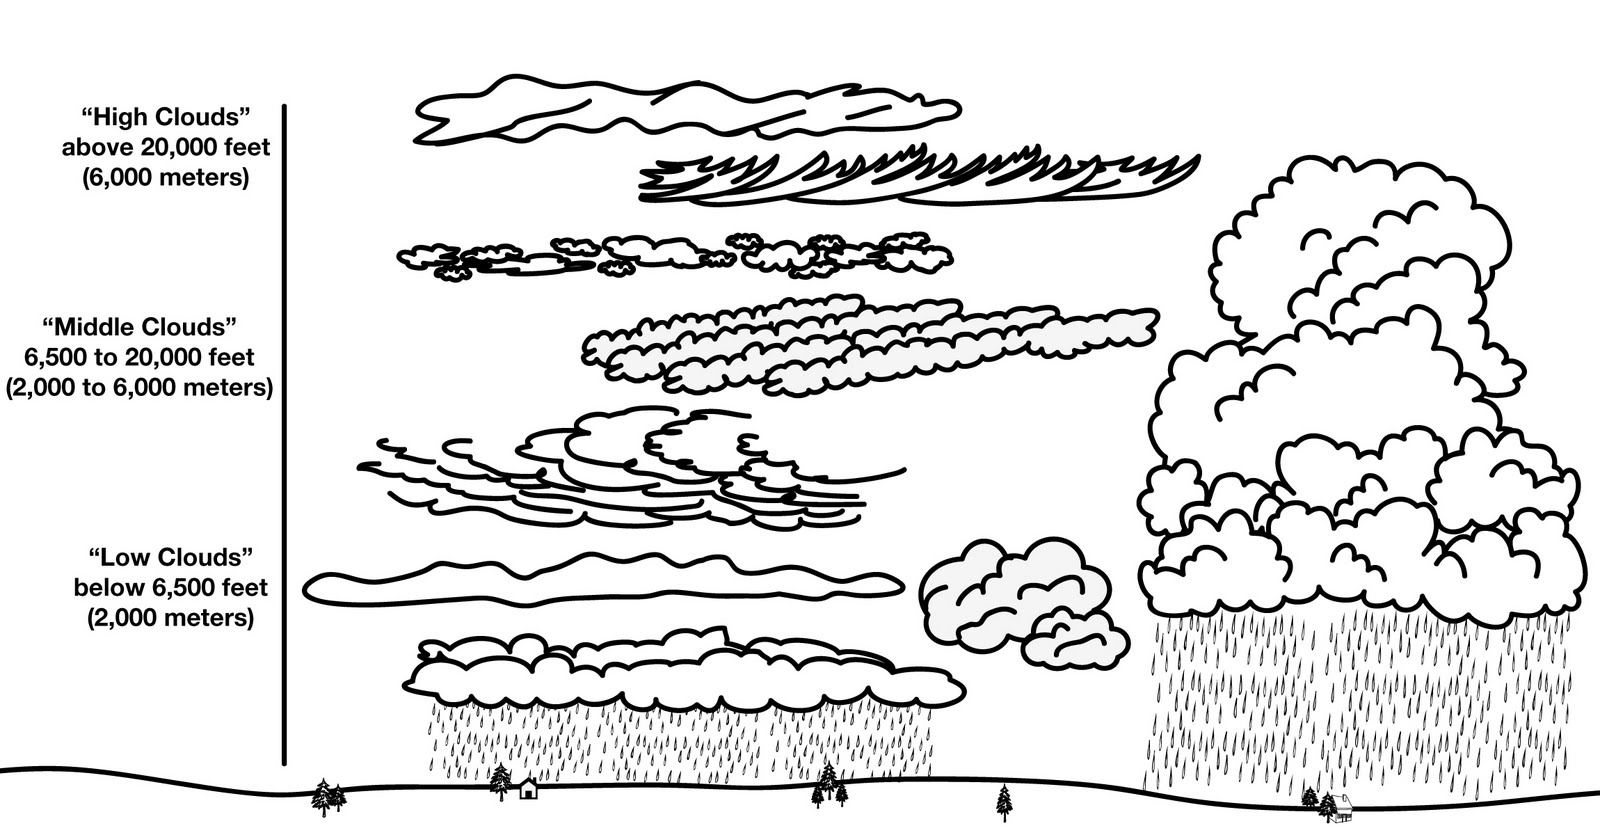 Worksheets Types Of Clouds Worksheet other graphical works august 2011 saturday 6 2011